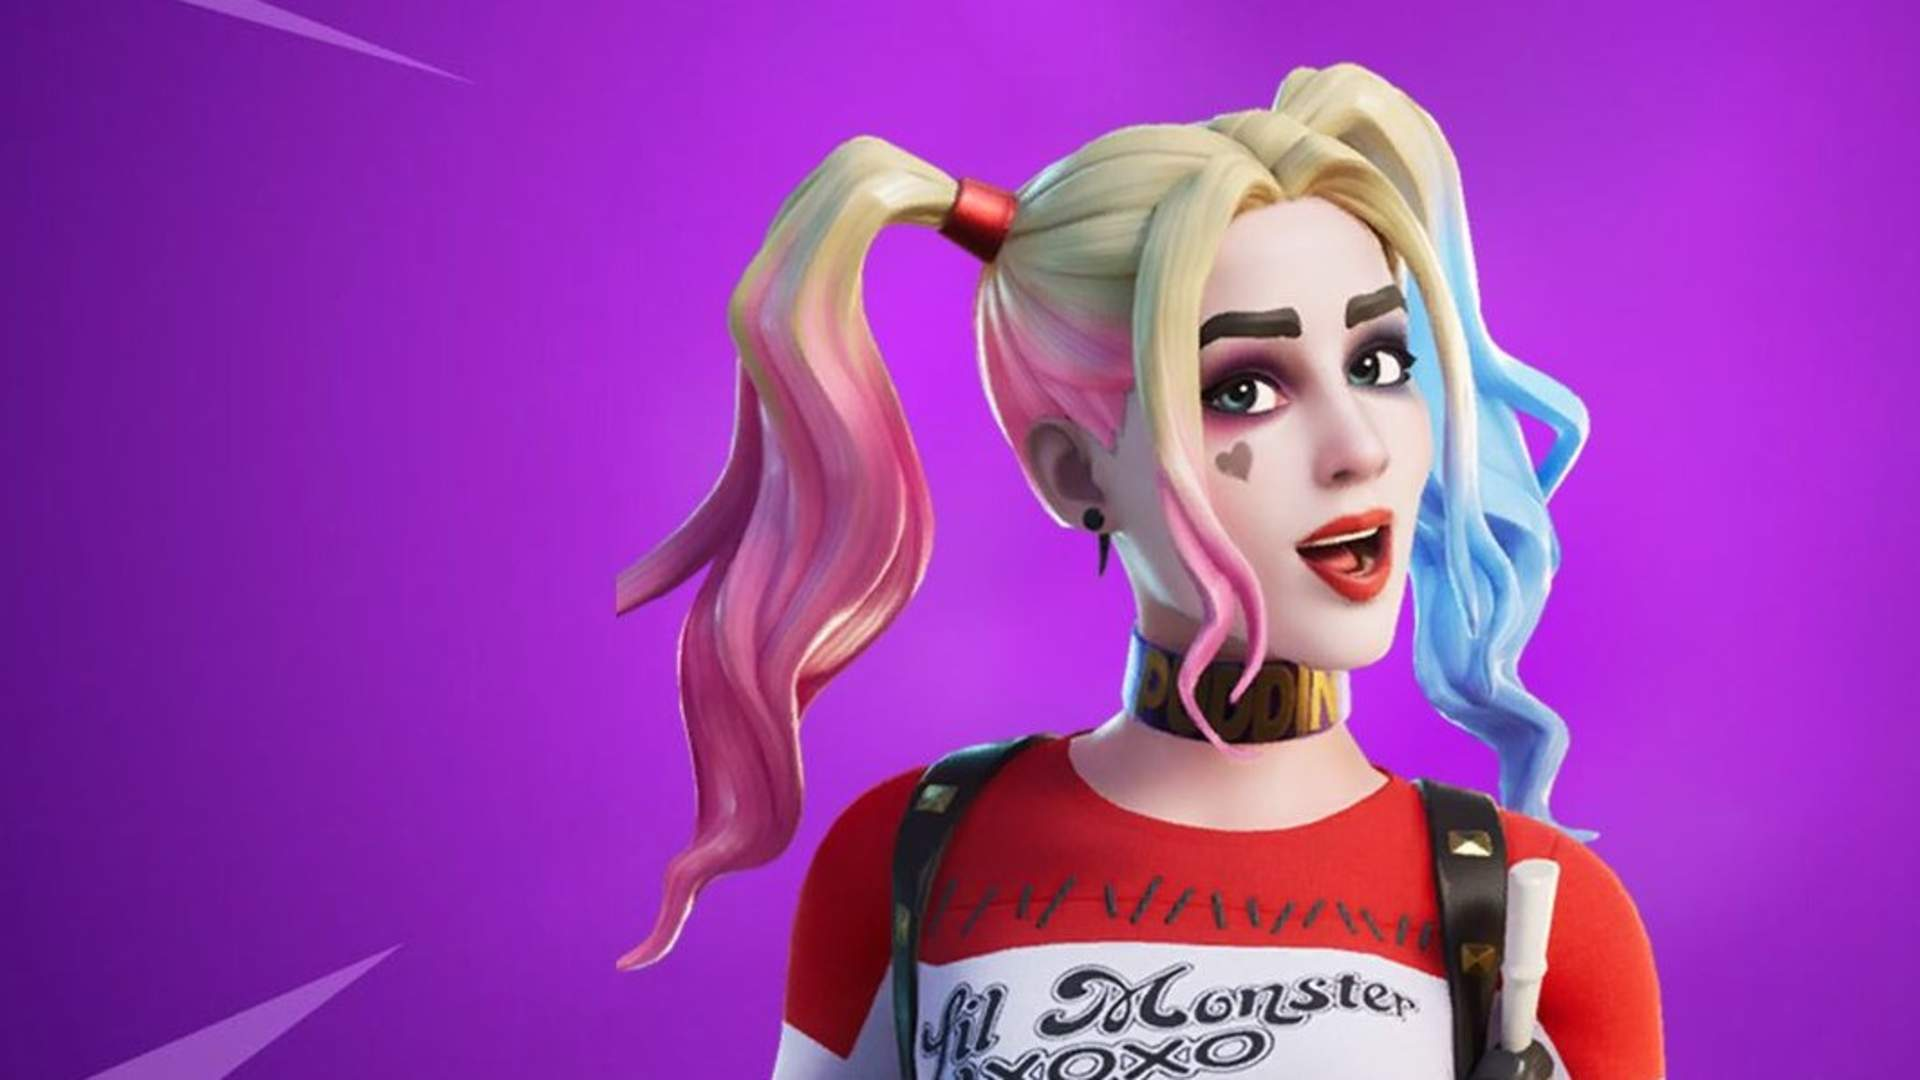 Harley Quinn Fortnite Outfit Wallpapers Wallpaper Cave